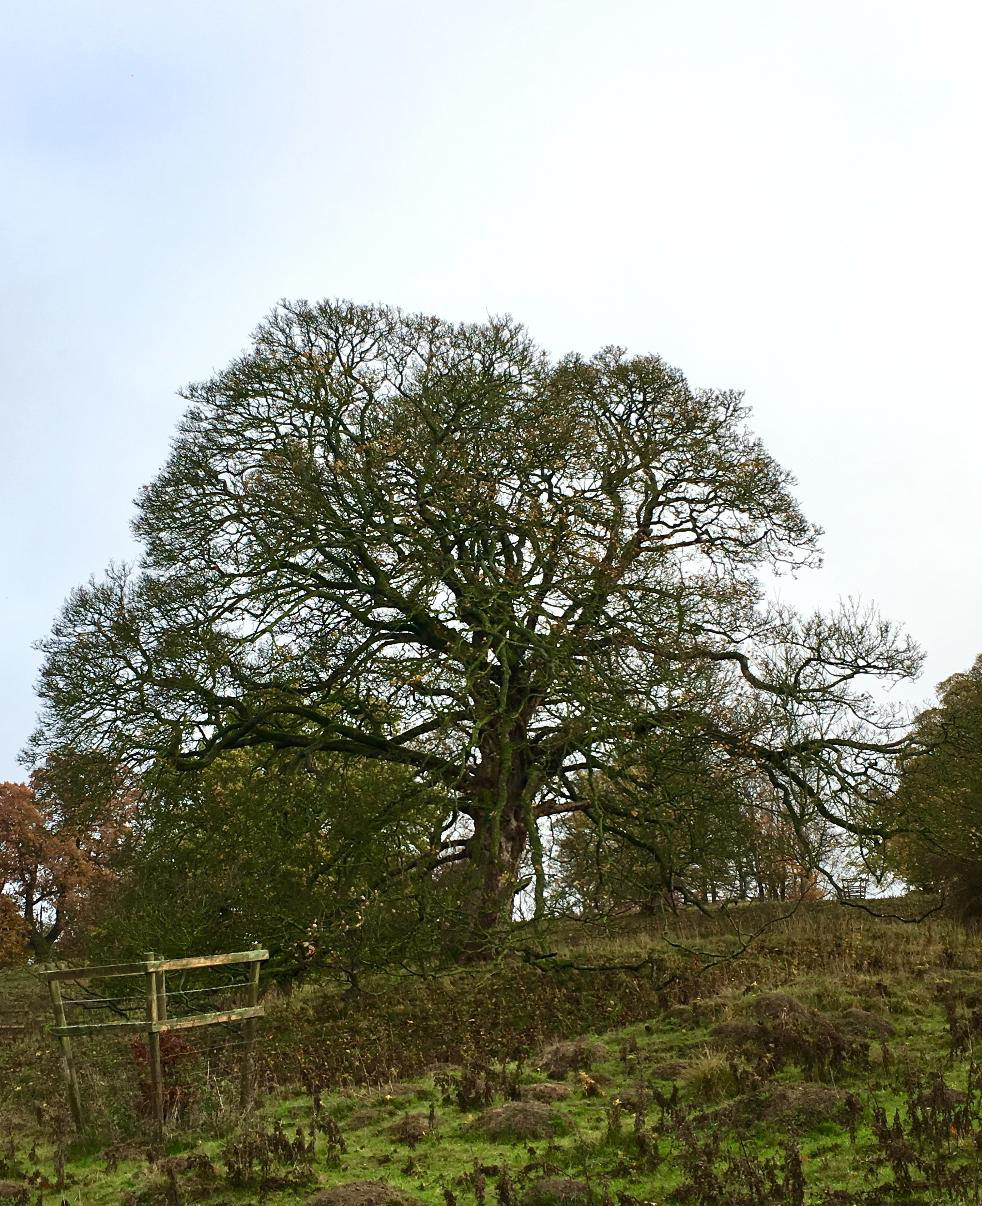 The typical silhouette of a mature oak tree, Haddon Hall (photograph J. Cook)